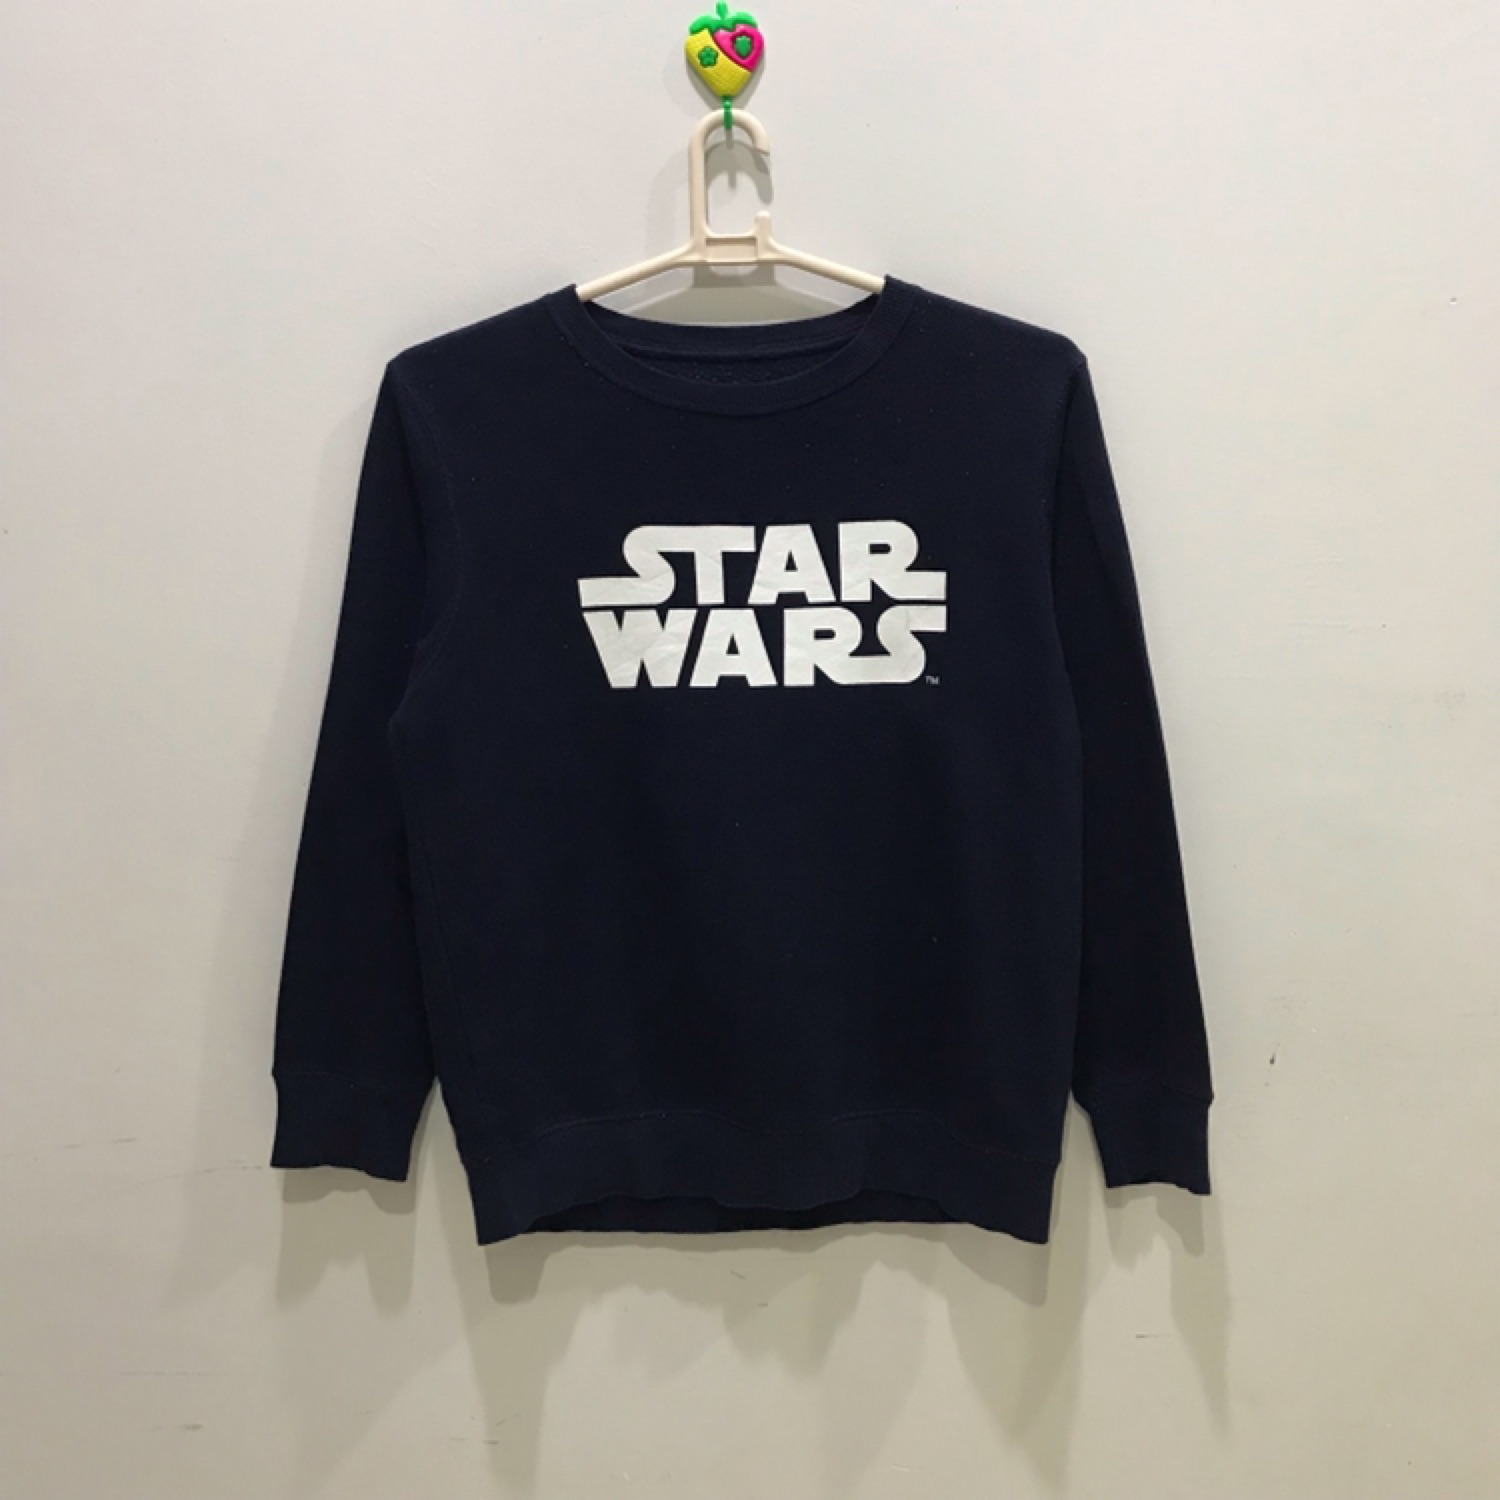 Star War Sweatshirts Size Xl Fits Size L